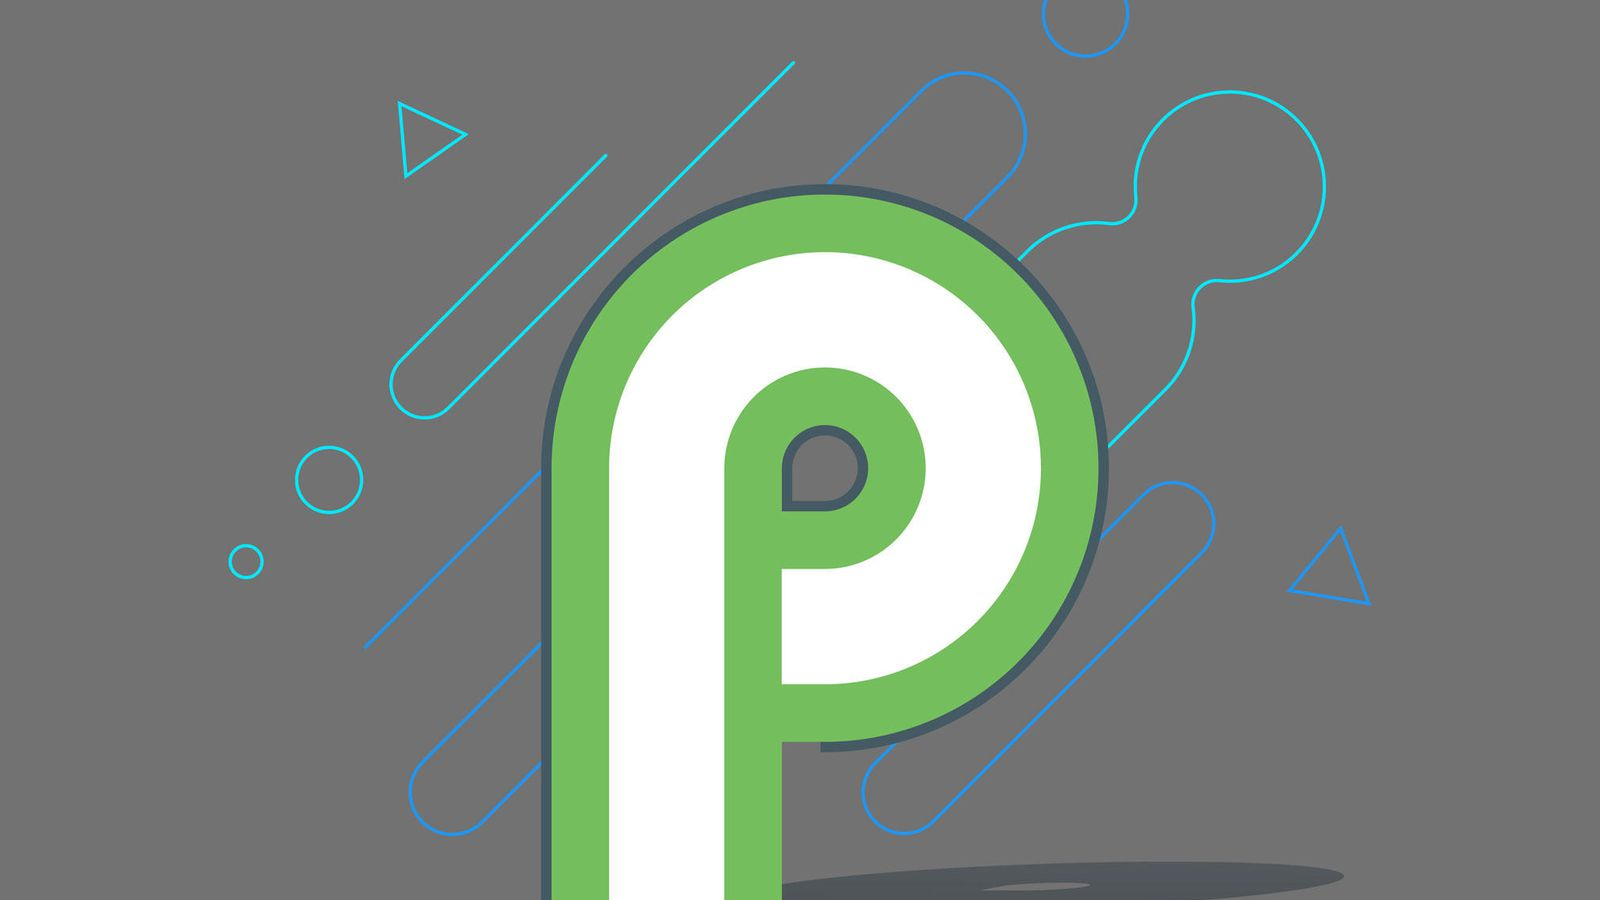 List] Device Getting Lineageos 16 Based On Android P 9 0